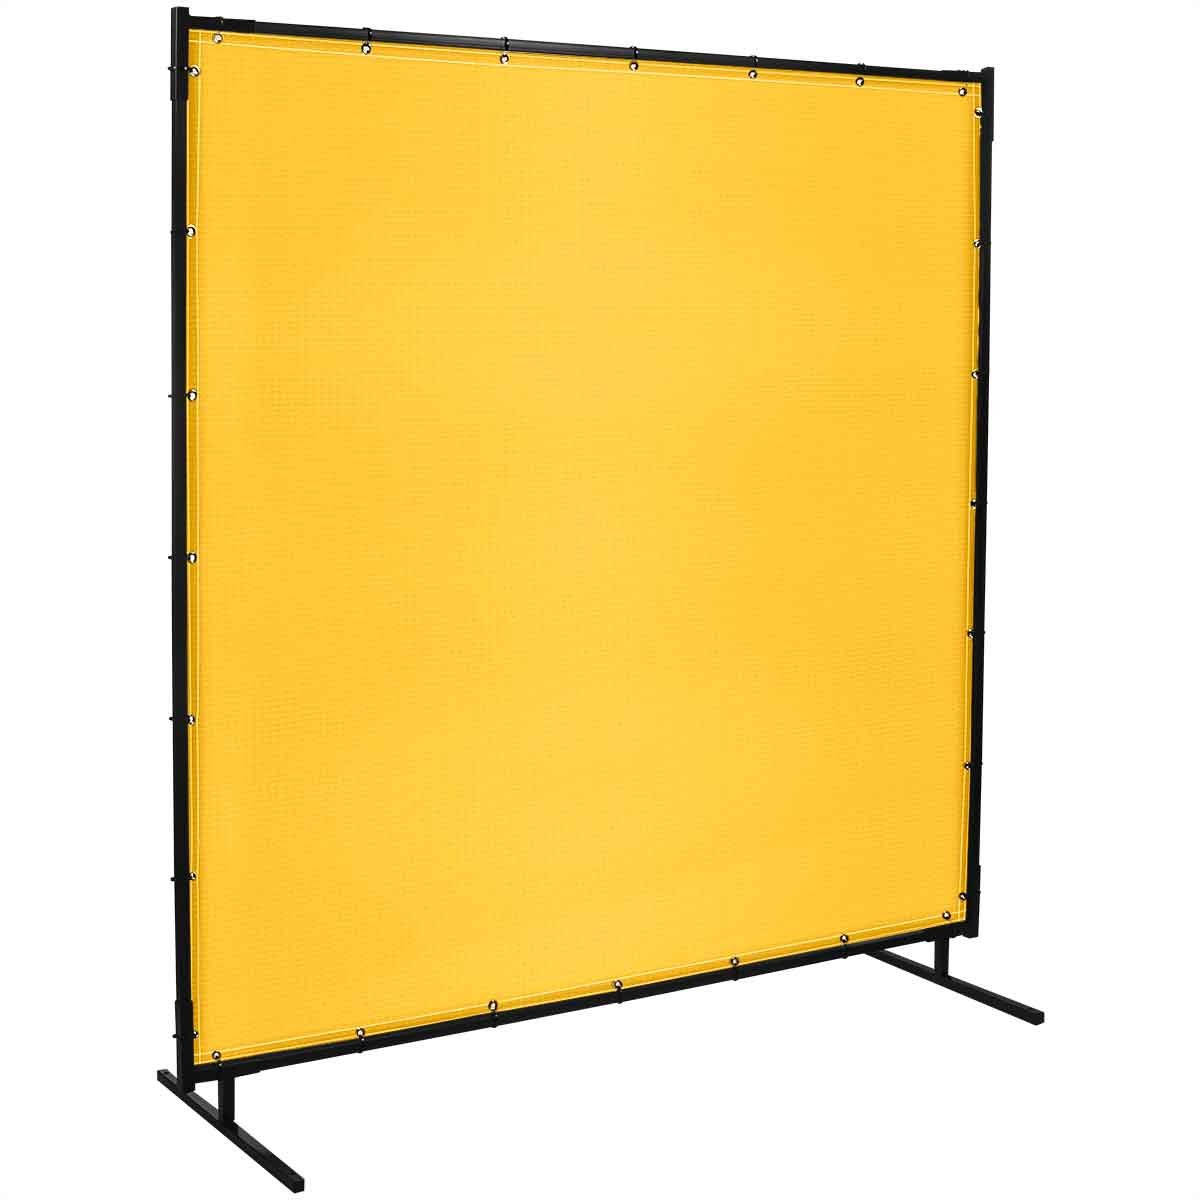 Steiner 535-6X10 Protect-O-Screen Classic Welding Screen with 13-Ounce Vinyl Laminated Polyester Curtain, Blue, 6' x 10' 6' x 10'